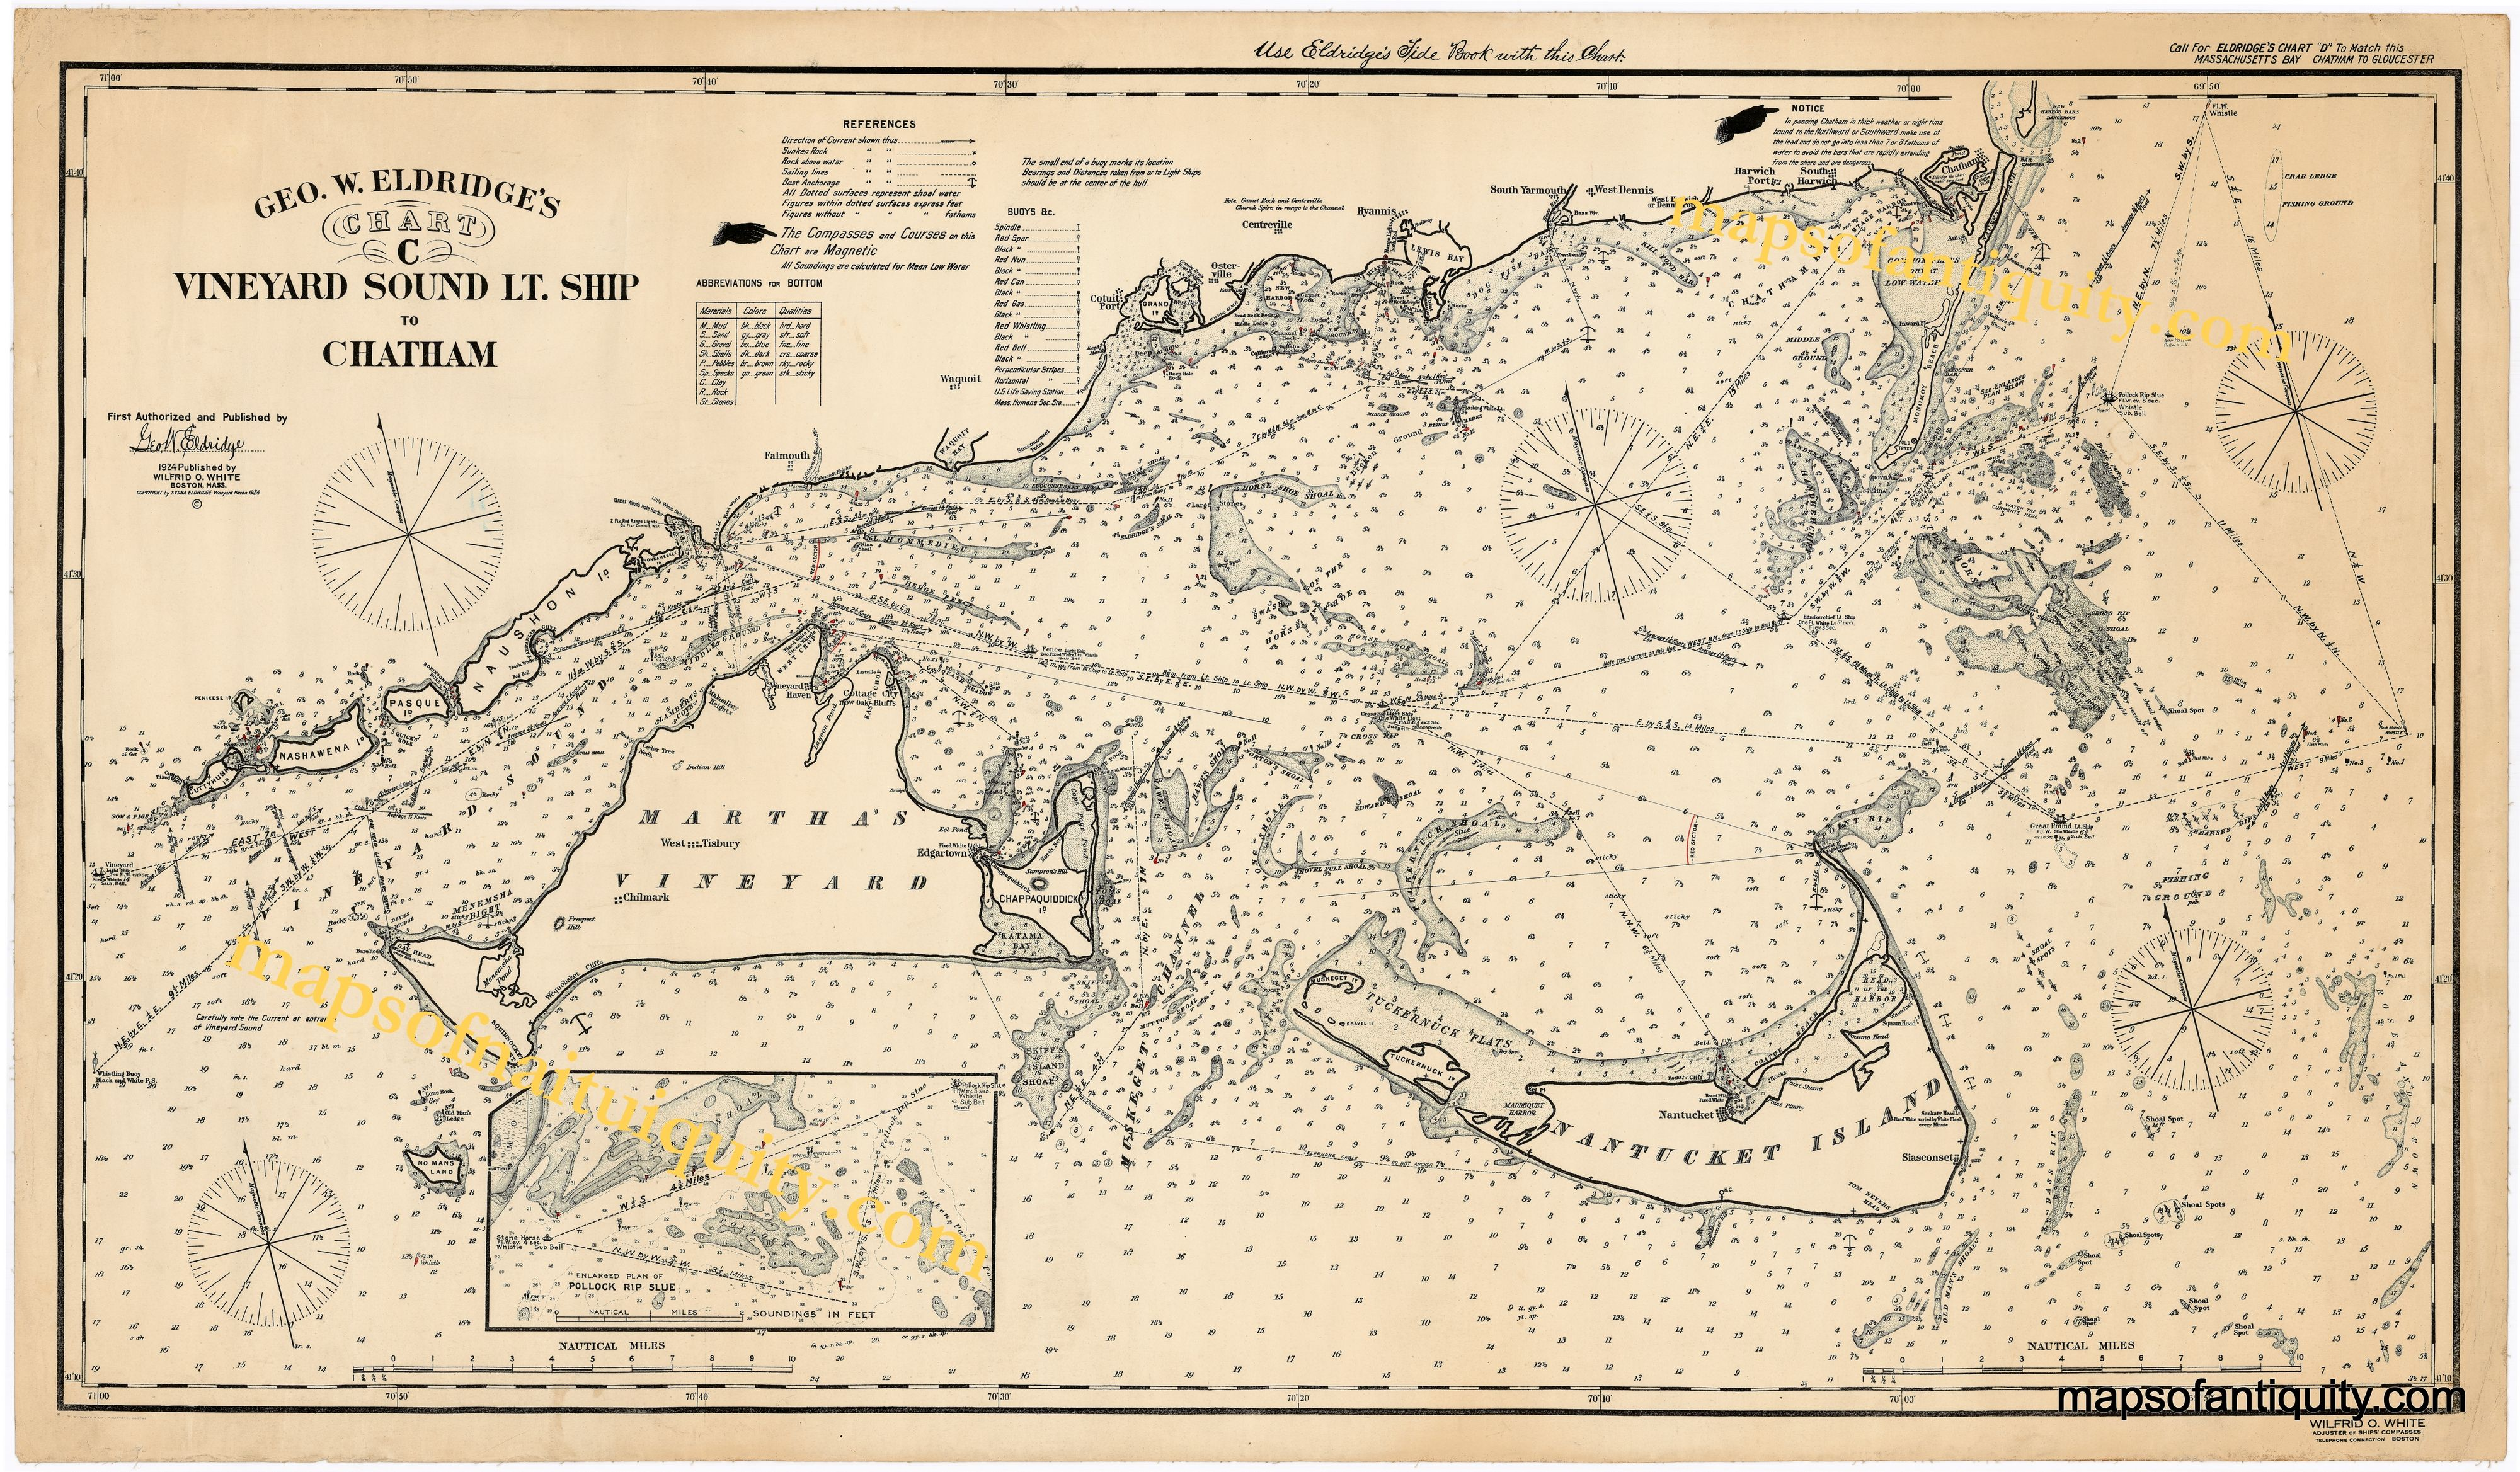 This Famous Eldredge Nautical Chart C Print Covers The Southern